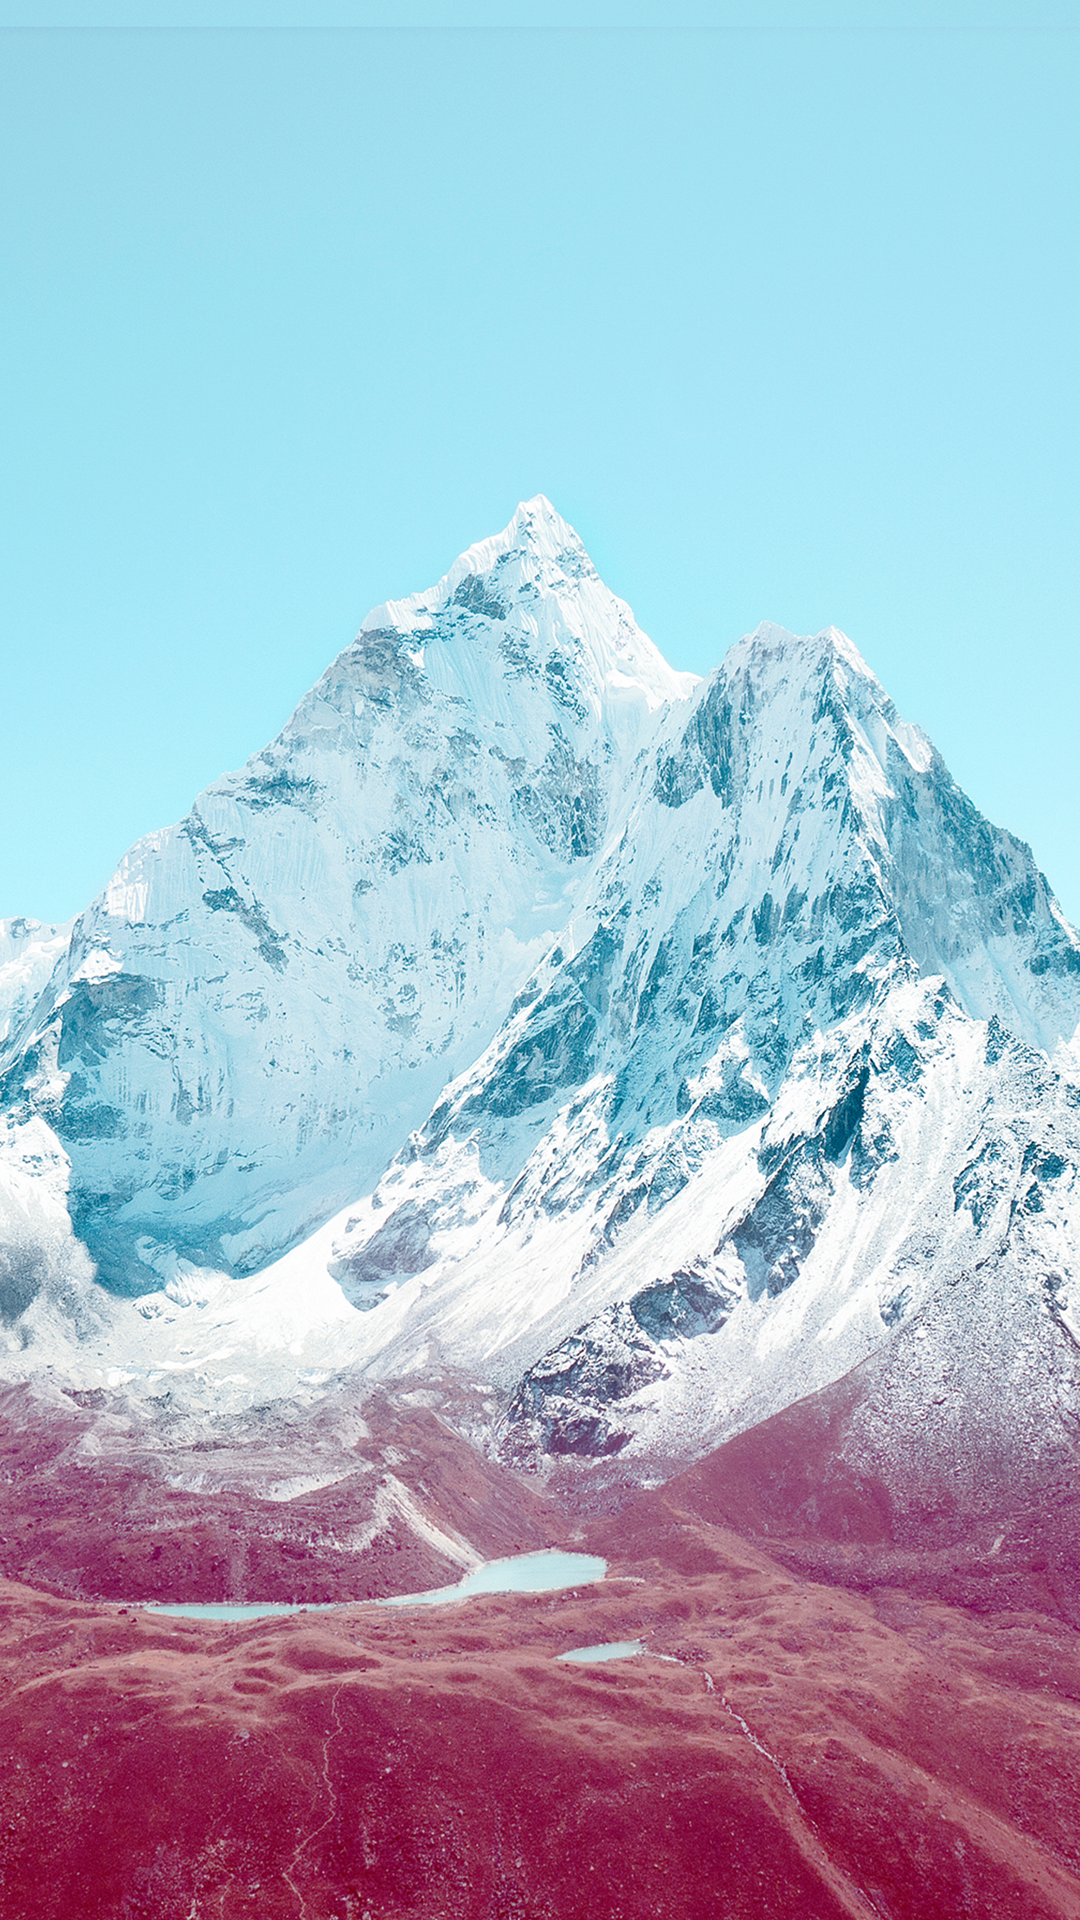 iOS 7 Mountains HTC hd wallpaper - Best htc one wallpapers - Mountain Range PNG HD